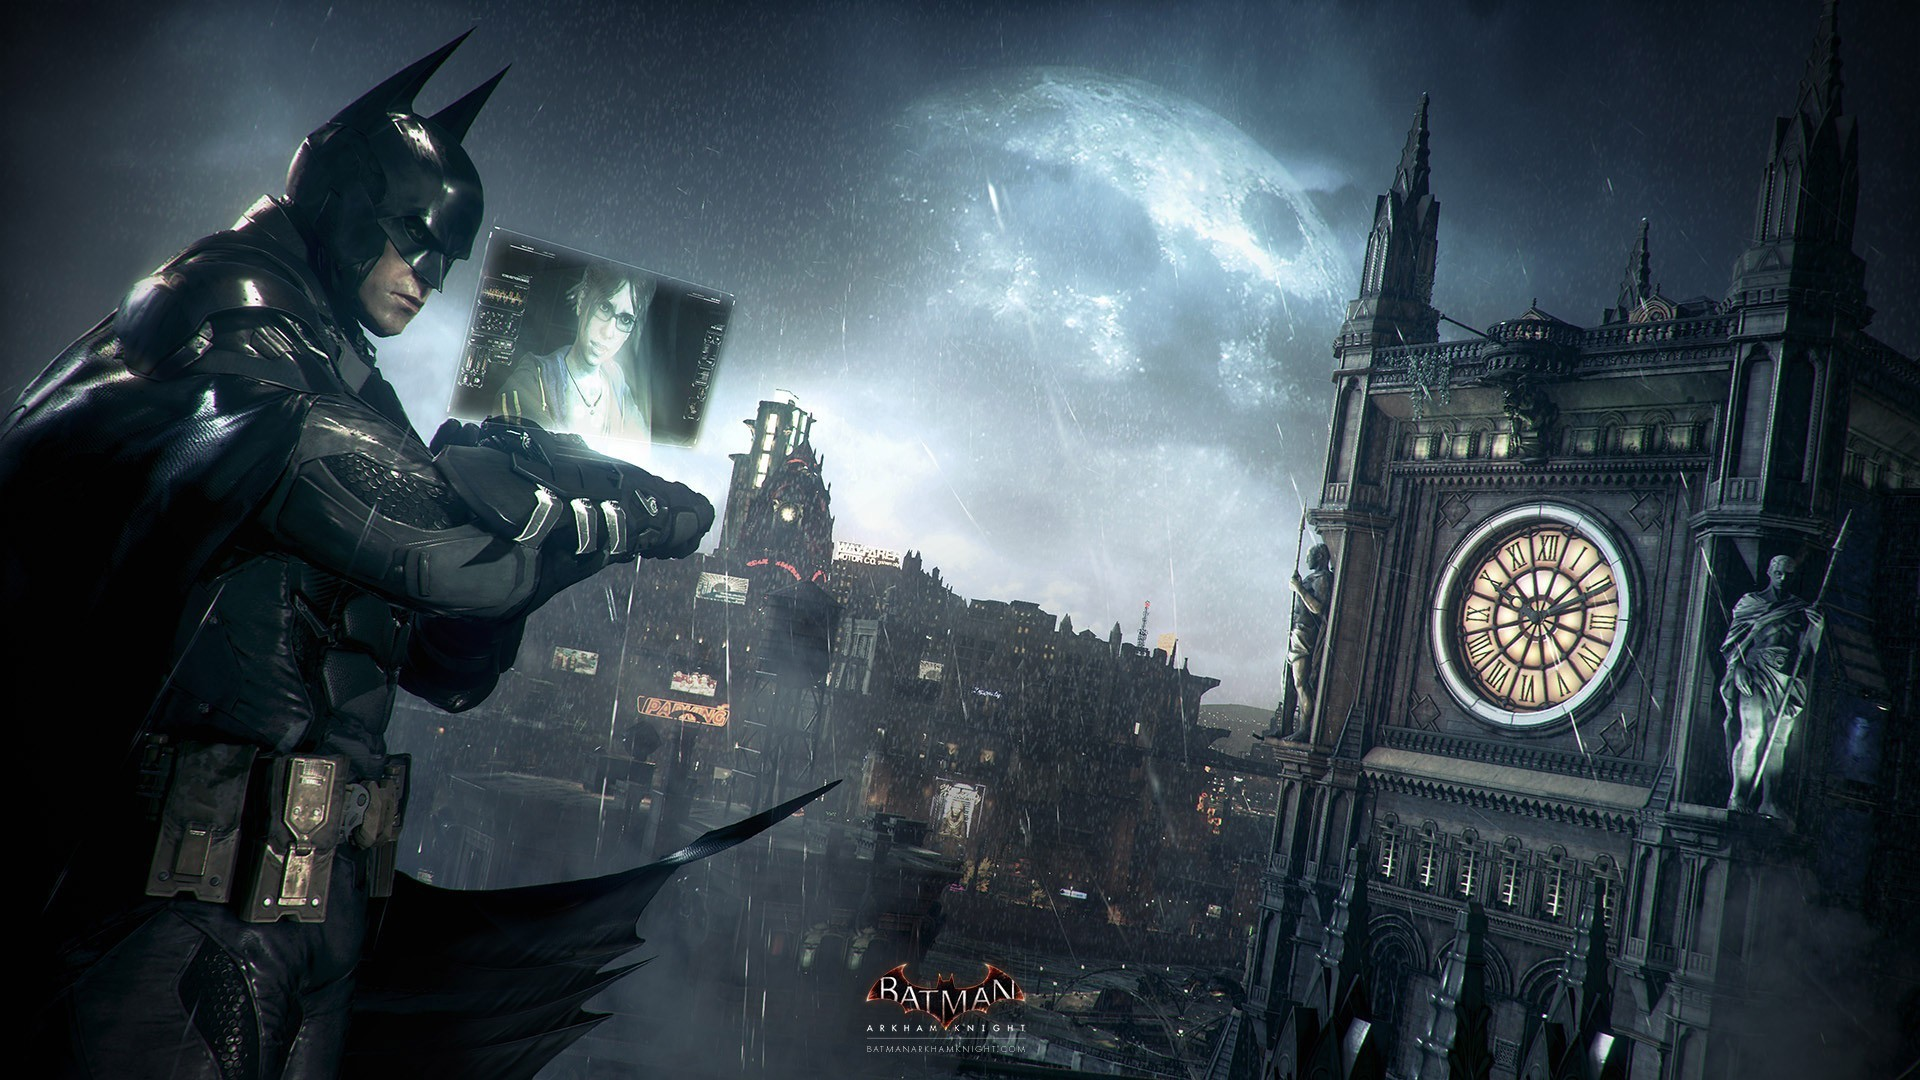 Arkham Knight Video Games 10 Background Wallpaper   Hivewallpapercom 1920x1080